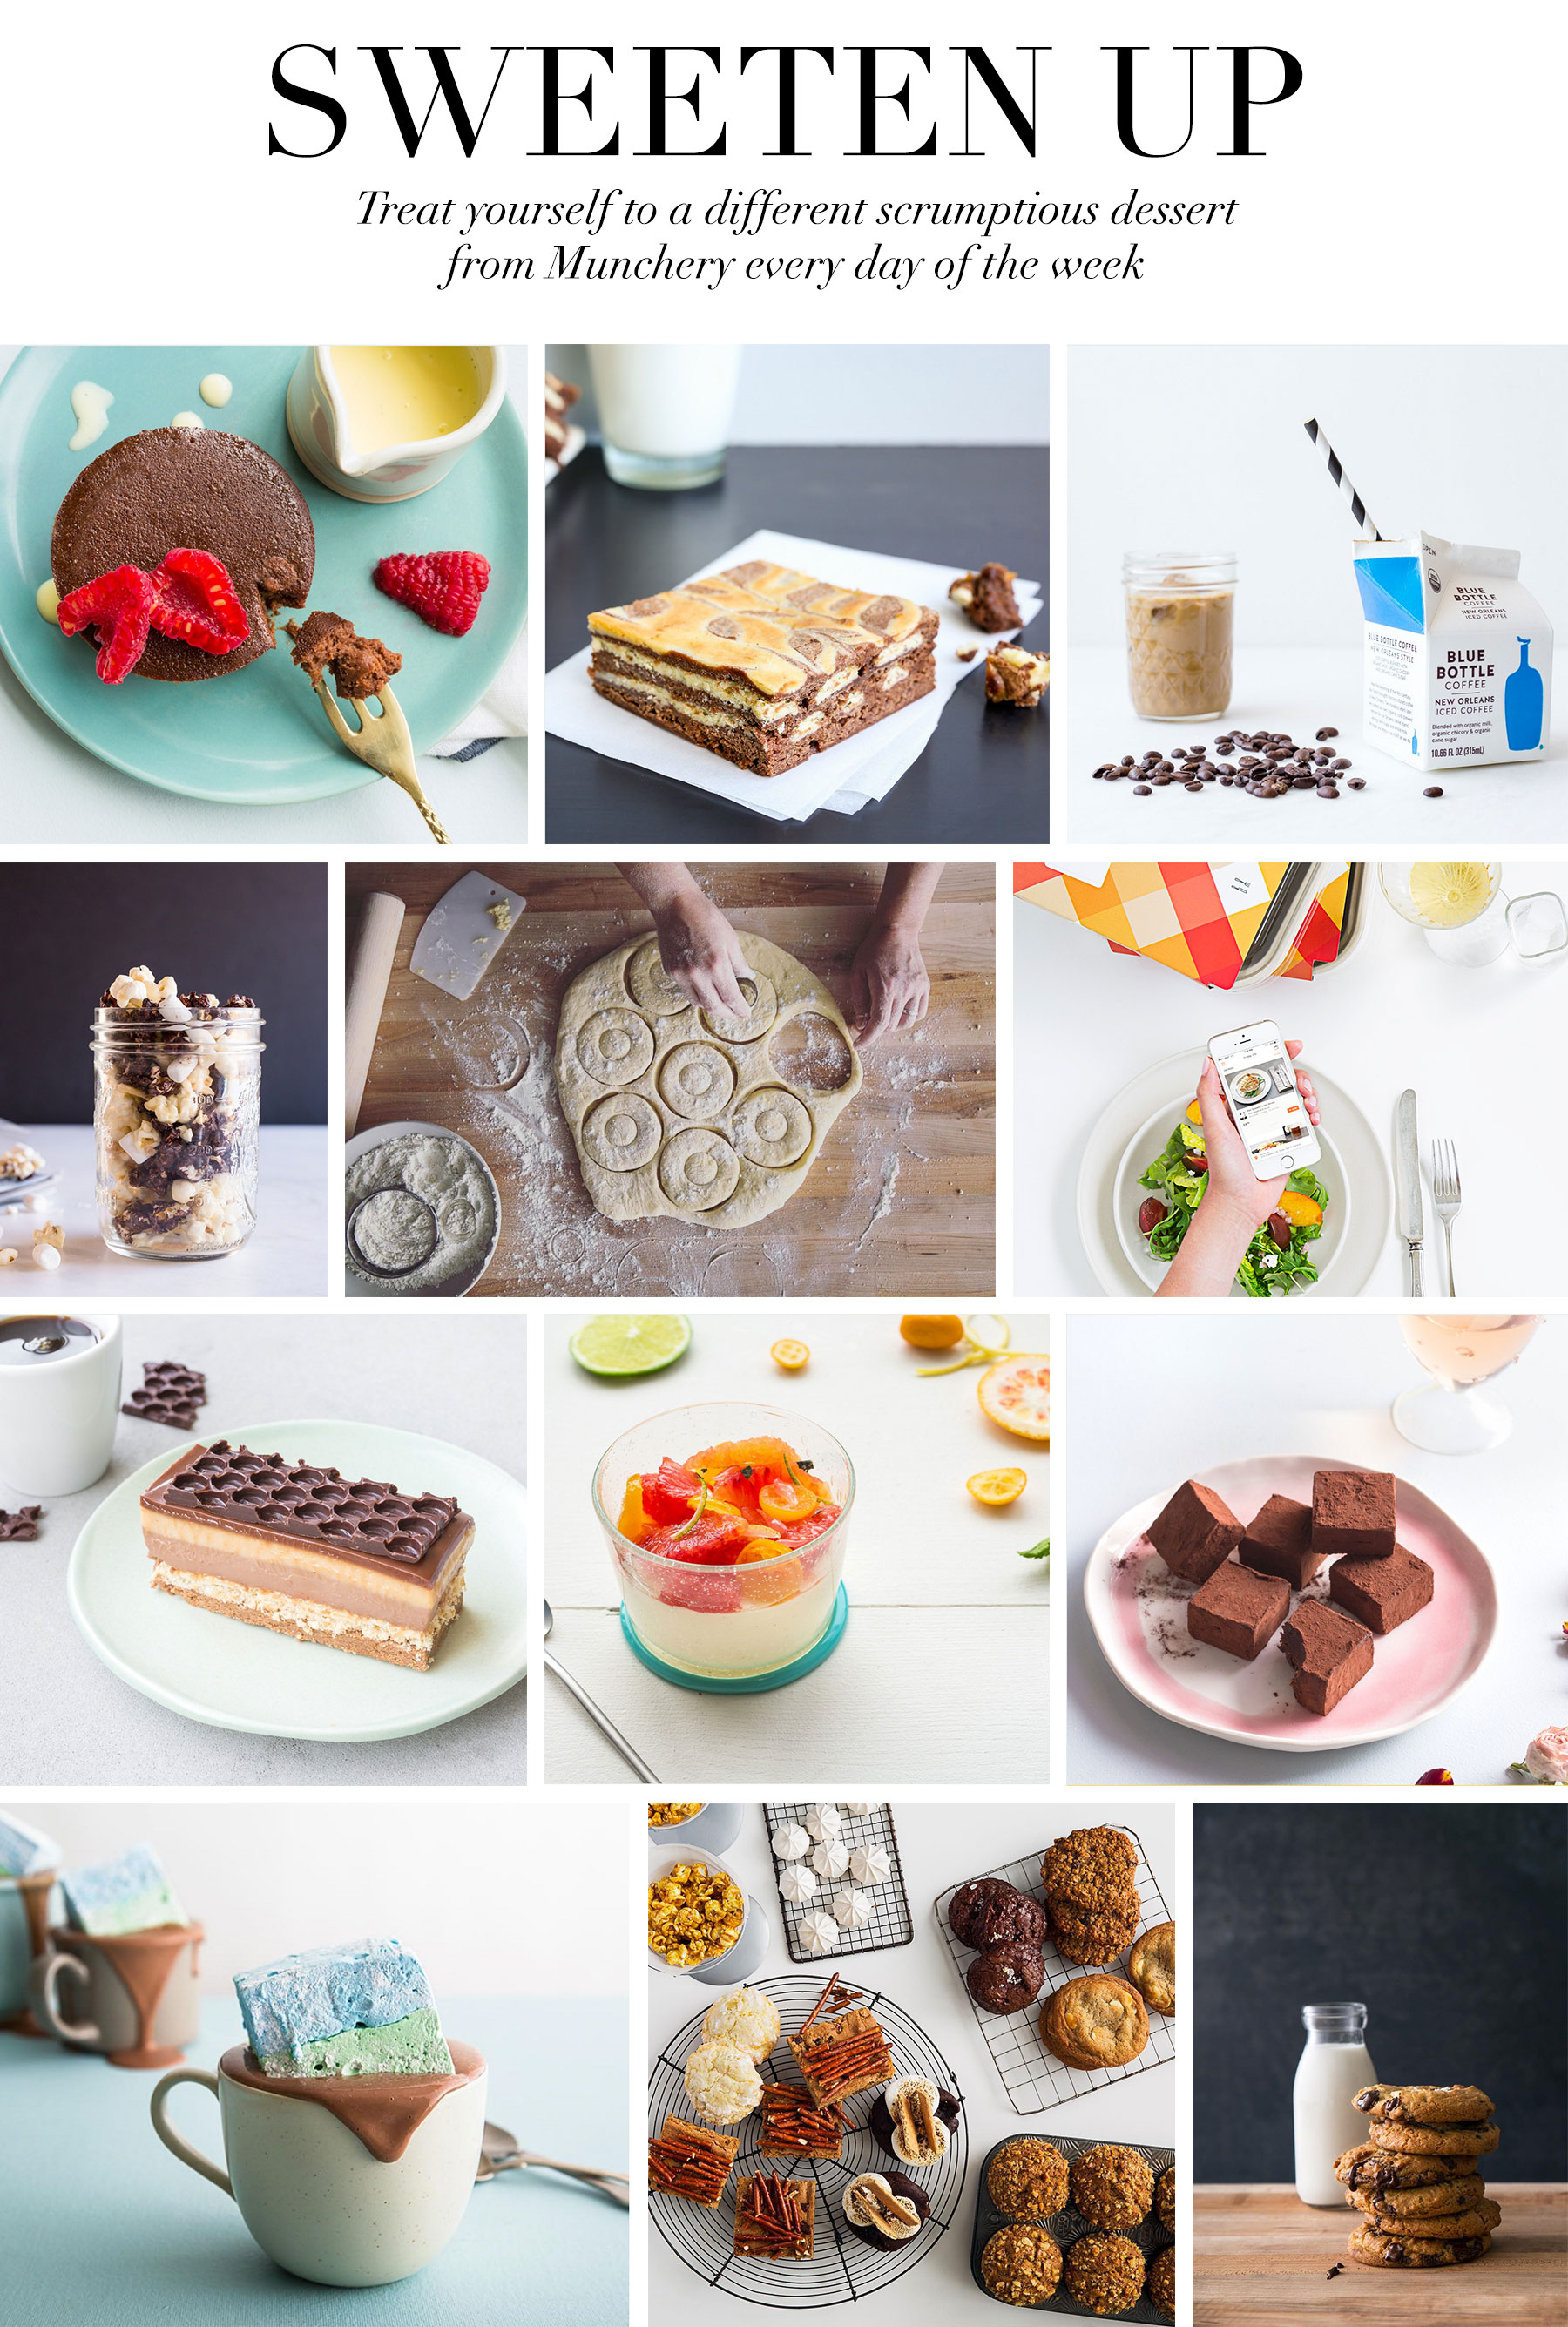 Ceci Johnson's Pampering Picks - Sweeten Up - I'll be treating myself to a big dessert spread from Munchery. With a new menu every day, my sweet treats will be a surprise!